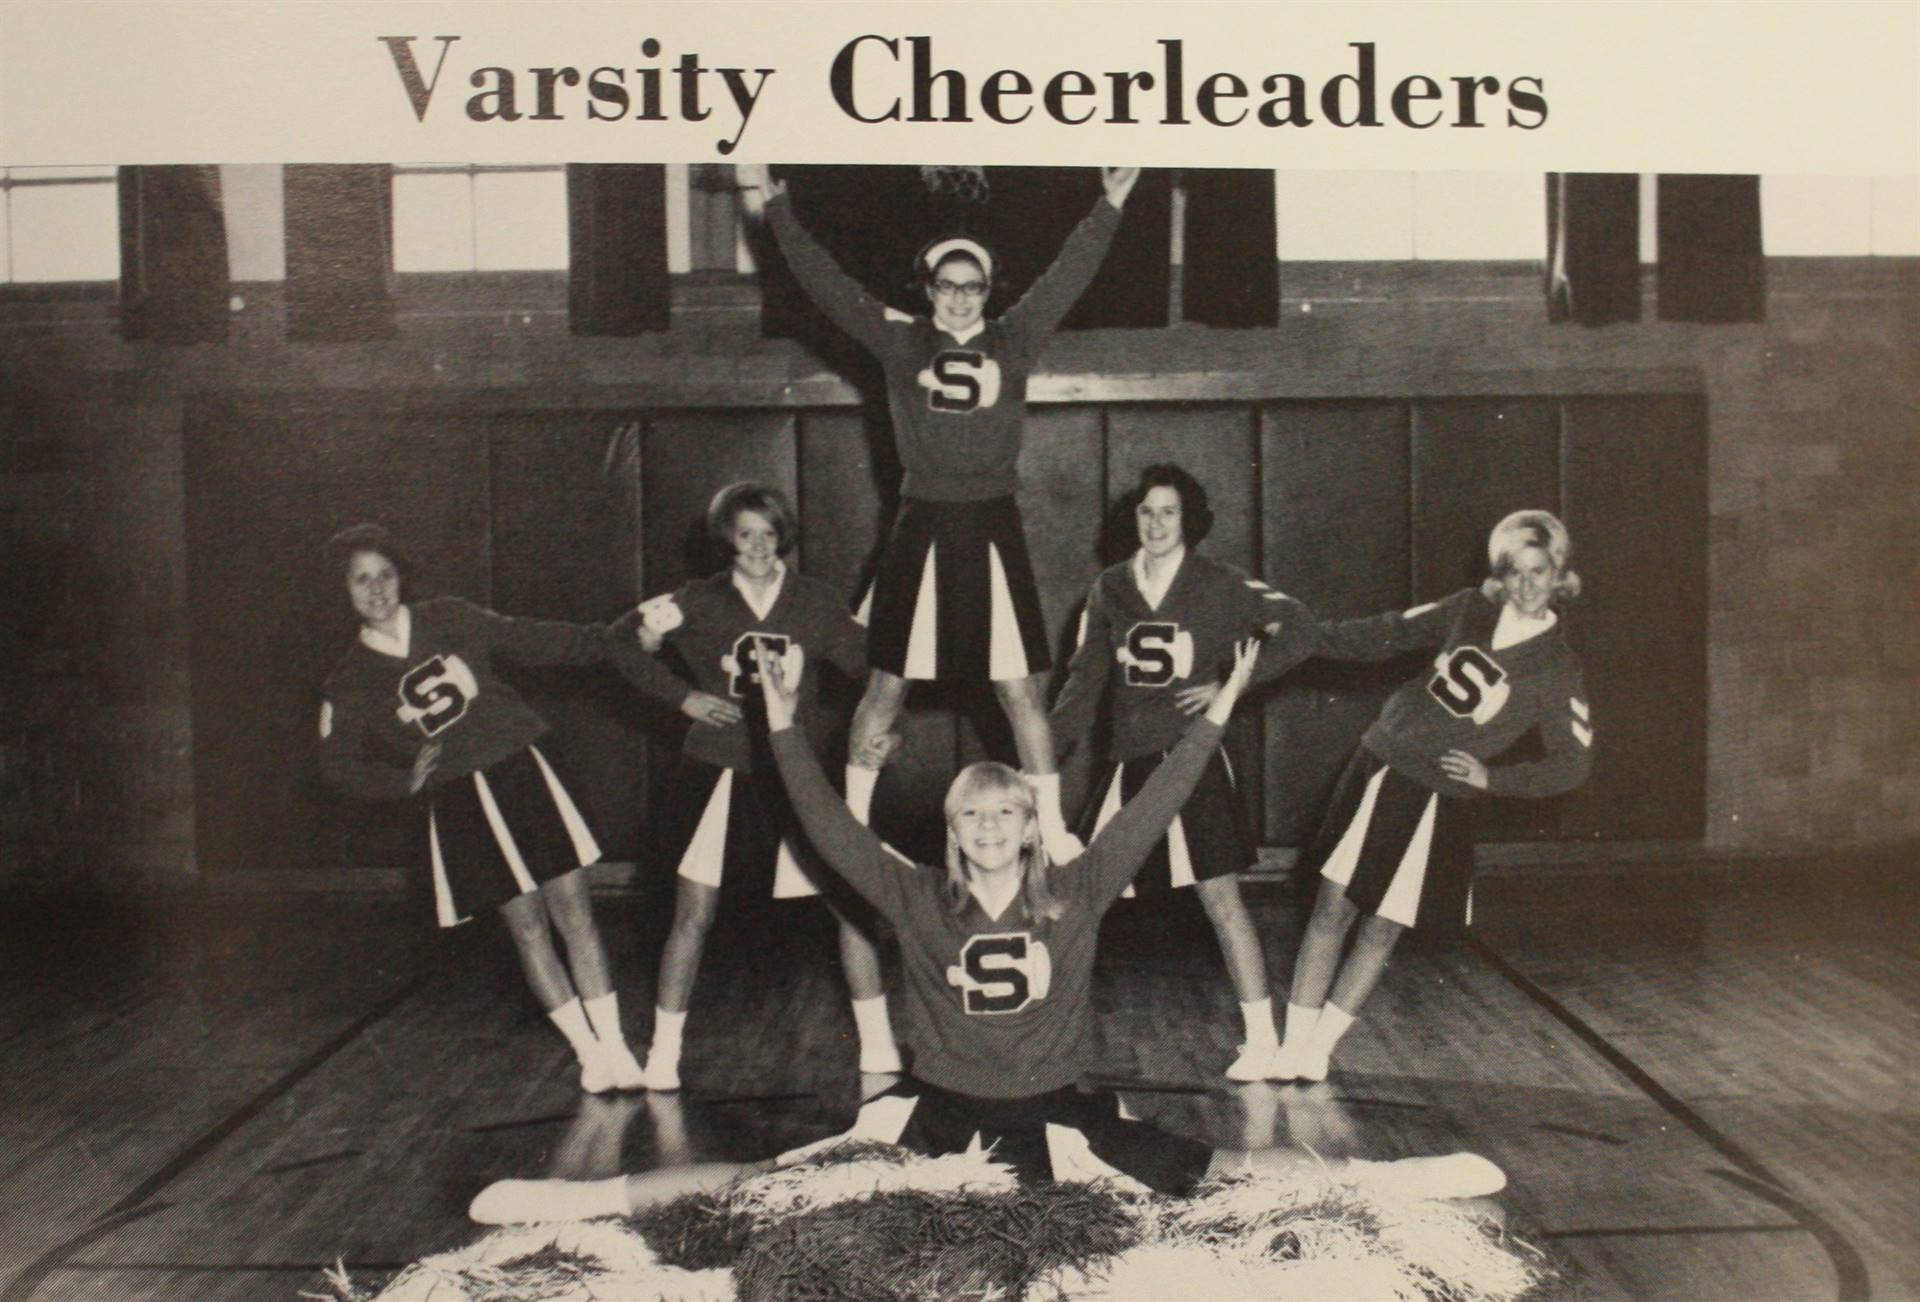 1968 Varsity Cheerleaders